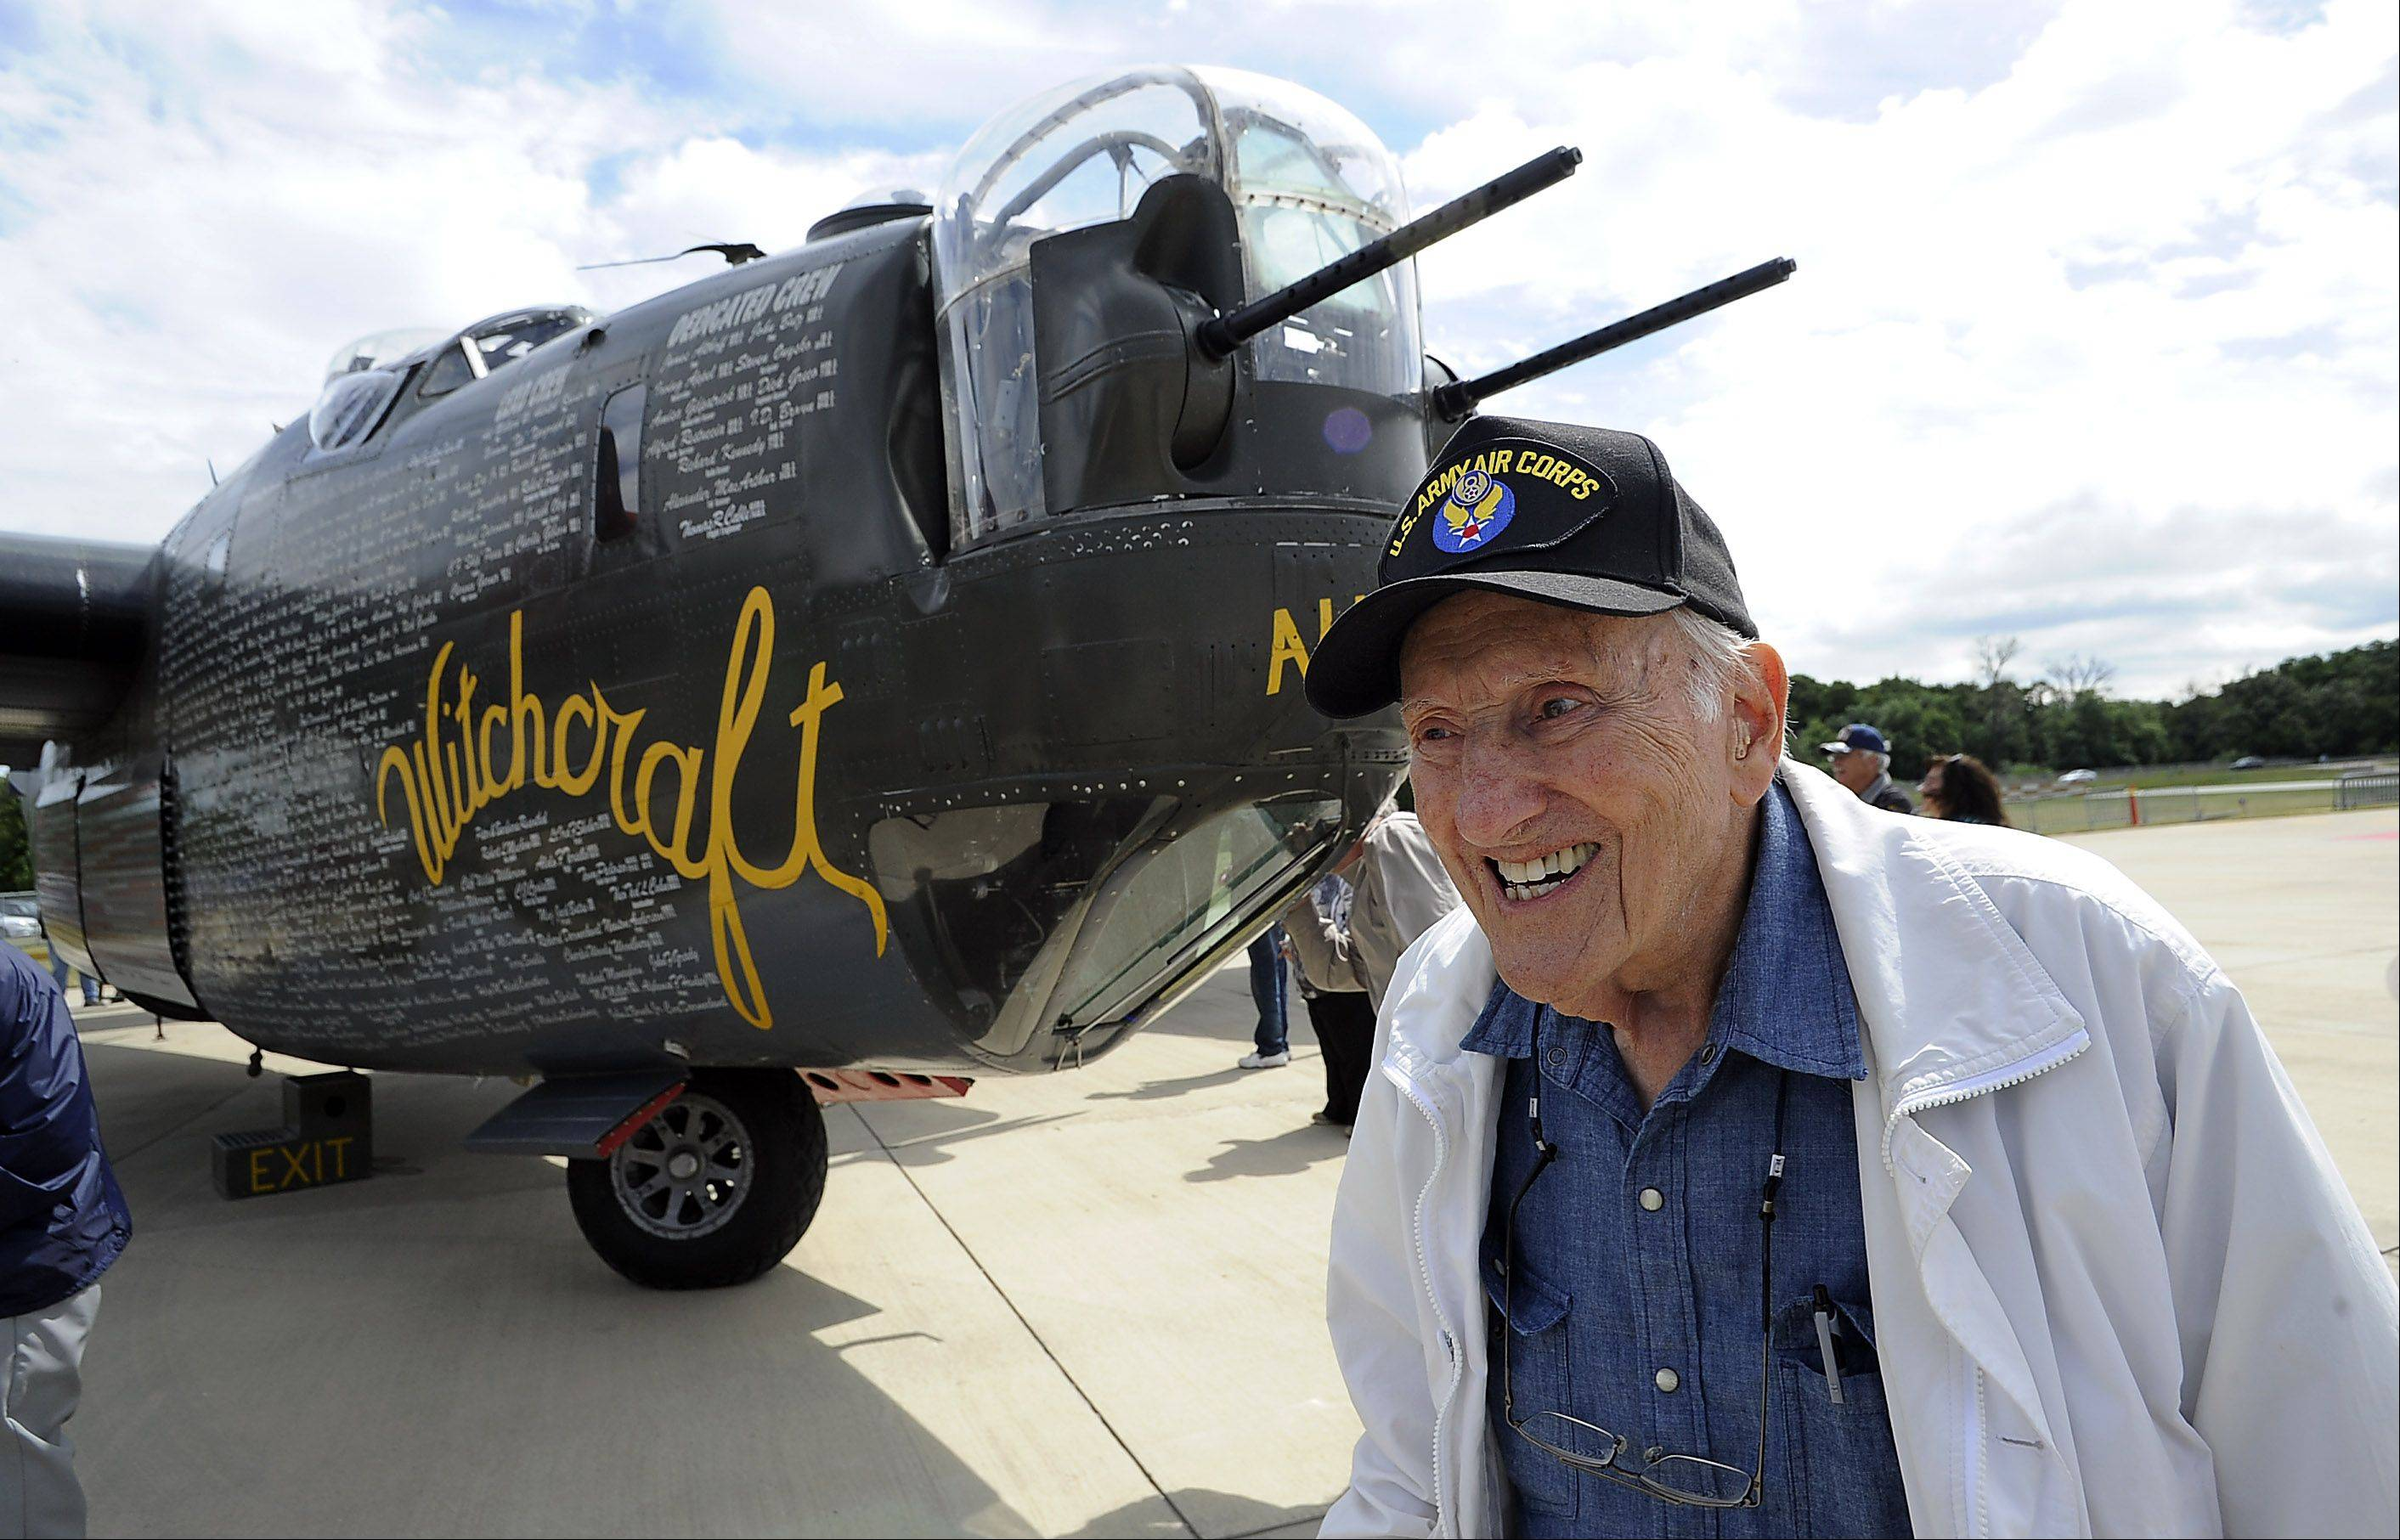 Jim Brahos, 90, of Beach Park, Illinois smiles fondly as he stands by the B-24 Liberator, just like the one he was a tailgunner in during World War II serving the years 1942 through 1945 at Chicago Executive Airport on Saturday.